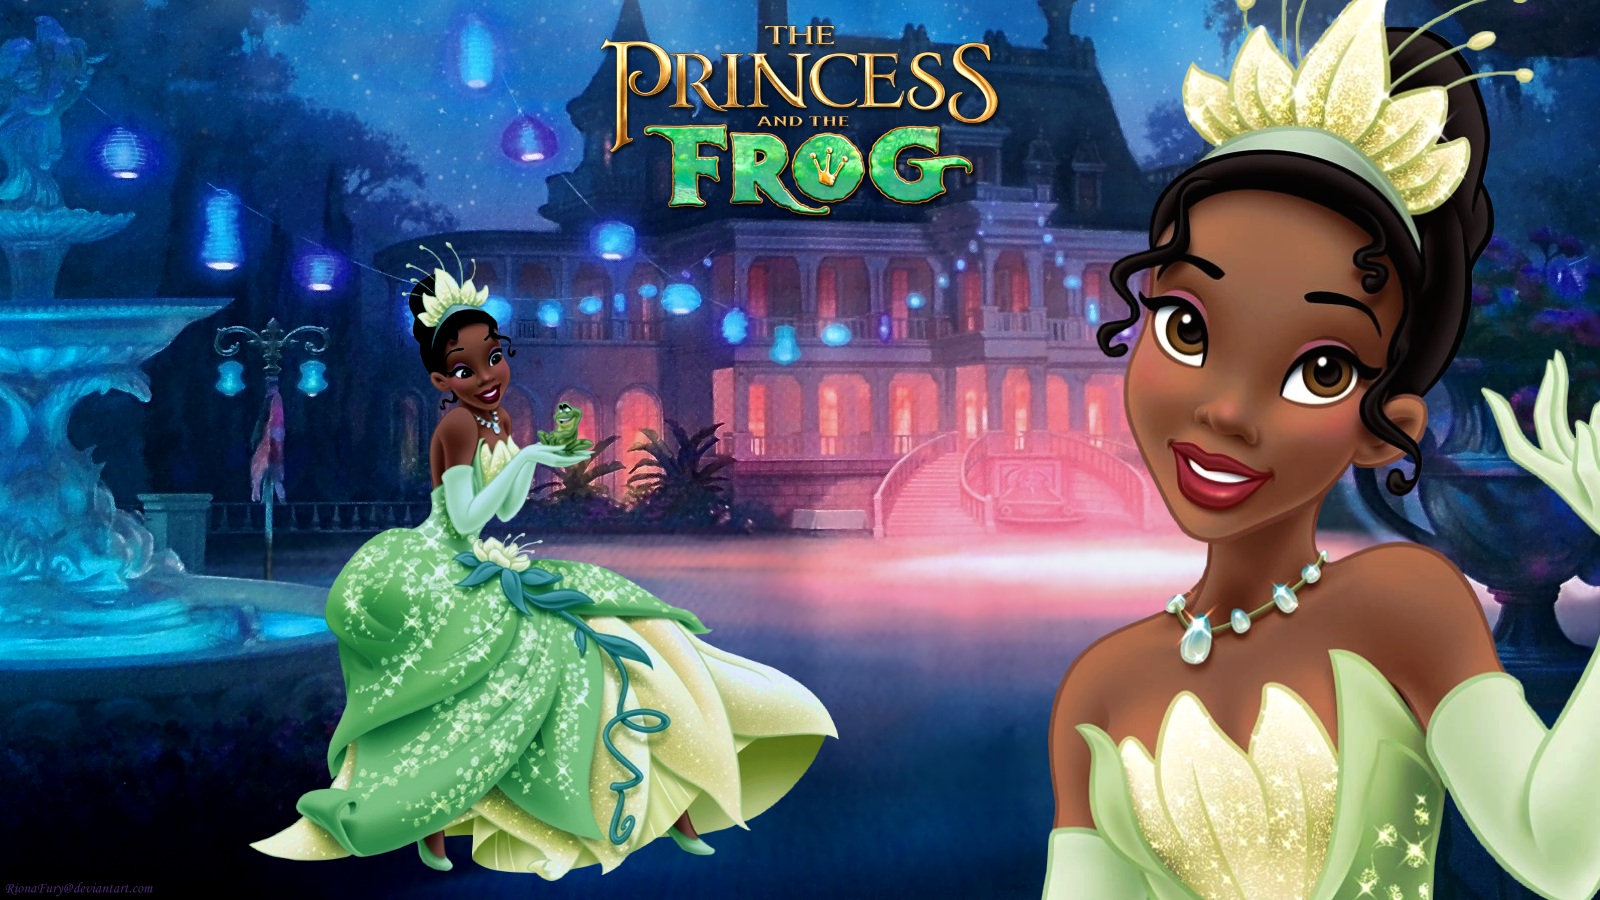 The Princess And The Frog, High Definition Wallpapers For Free | B.SCB